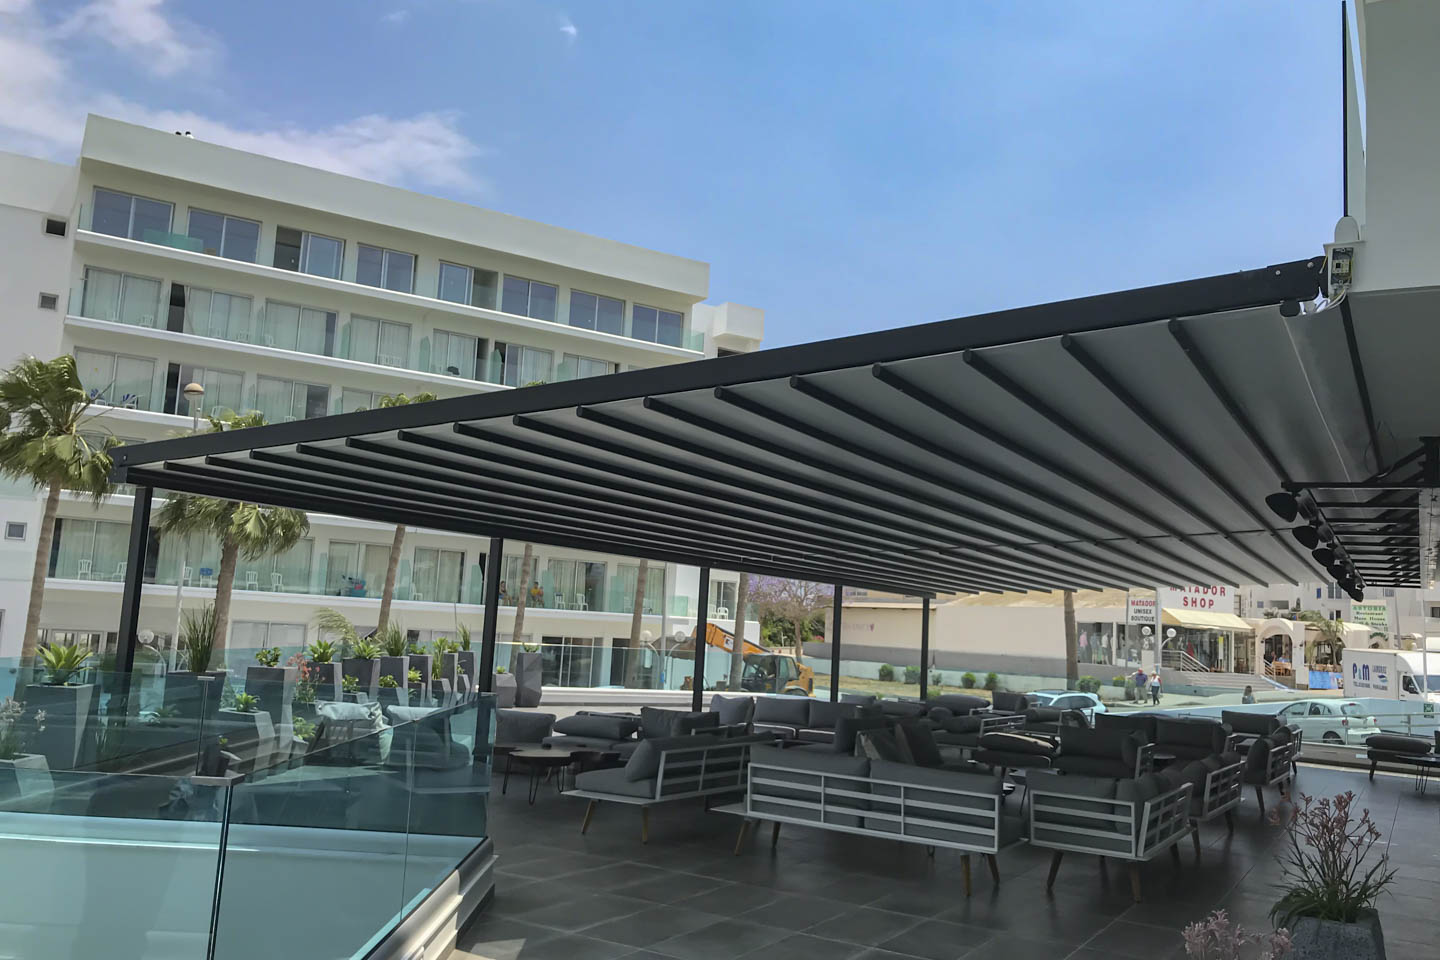 Victoria Trading Tents - Movable Systems: Tentopergolas